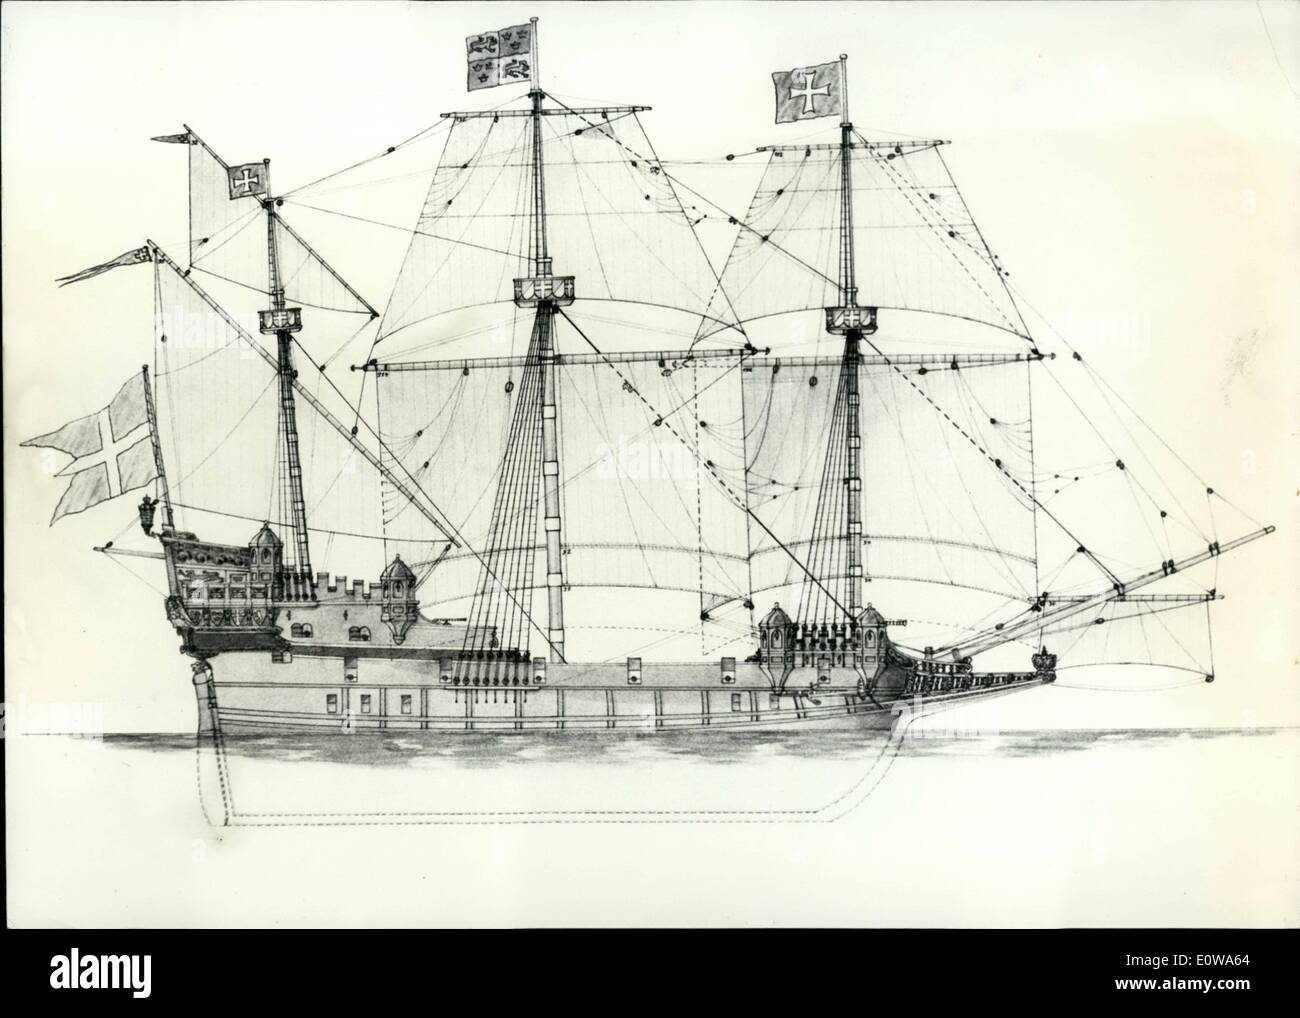 Apr. 04, 1962 - ''Ships from antiquity to modern times'': From the Babylonian ship build about 4500 b. Chr. over the Roman drone from 40 b. Chr., the Venice Galley and Hansakogge about 1500 to the gunboat, type ''Gronsund'' from 1883 extends the special exhibition in a museum in Hamburg which has been opened in these days. Altogether, there are exposed 85 technical designs on ship history outlined by the ships engine C. Dahms (C. Dahms) after ship findings, reliefs, paintings and illustrations on seals, miniatures and paintings on glass. OPS: the tackle draft of a Kogge about 1550 a. Chr. - Stock Image